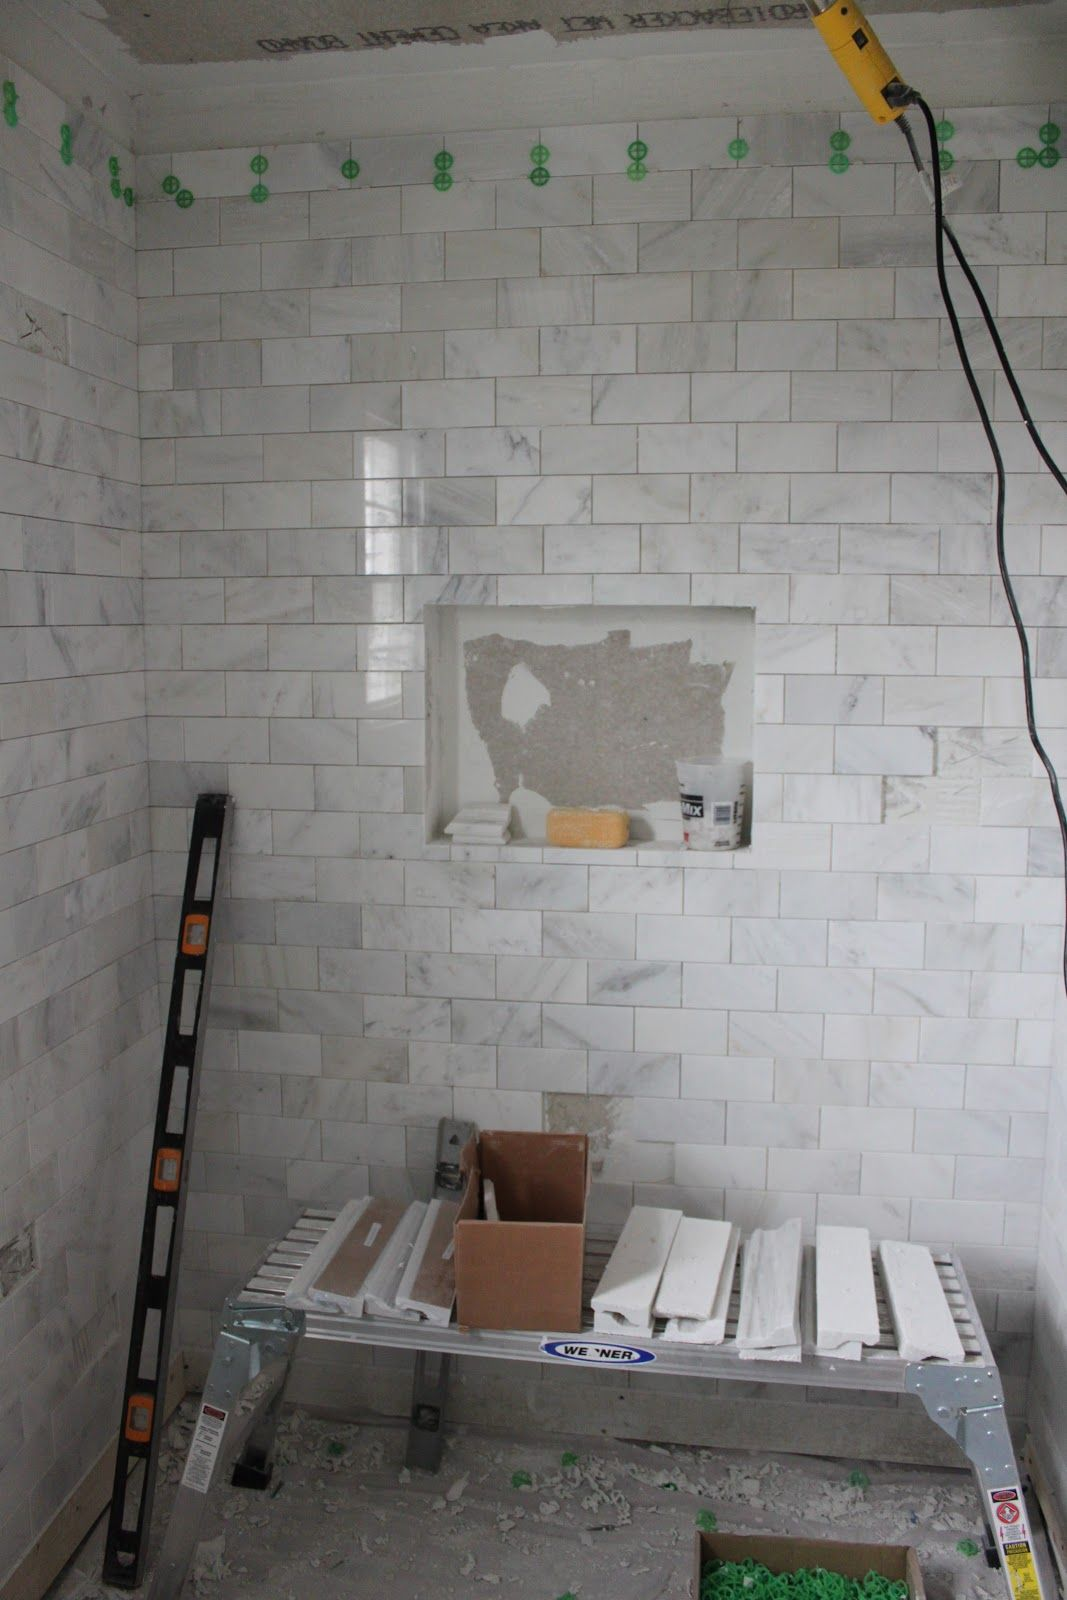 Pretty 12X12 Peel And Stick Floor Tile Thin 12X12 Vinyl Floor Tiles Regular 12X24 Tile Floor 18 Floor Tile Old 18X18 Tile Flooring Coloured2X6 Subway Tile The Shower Walls Will Be 3X6\